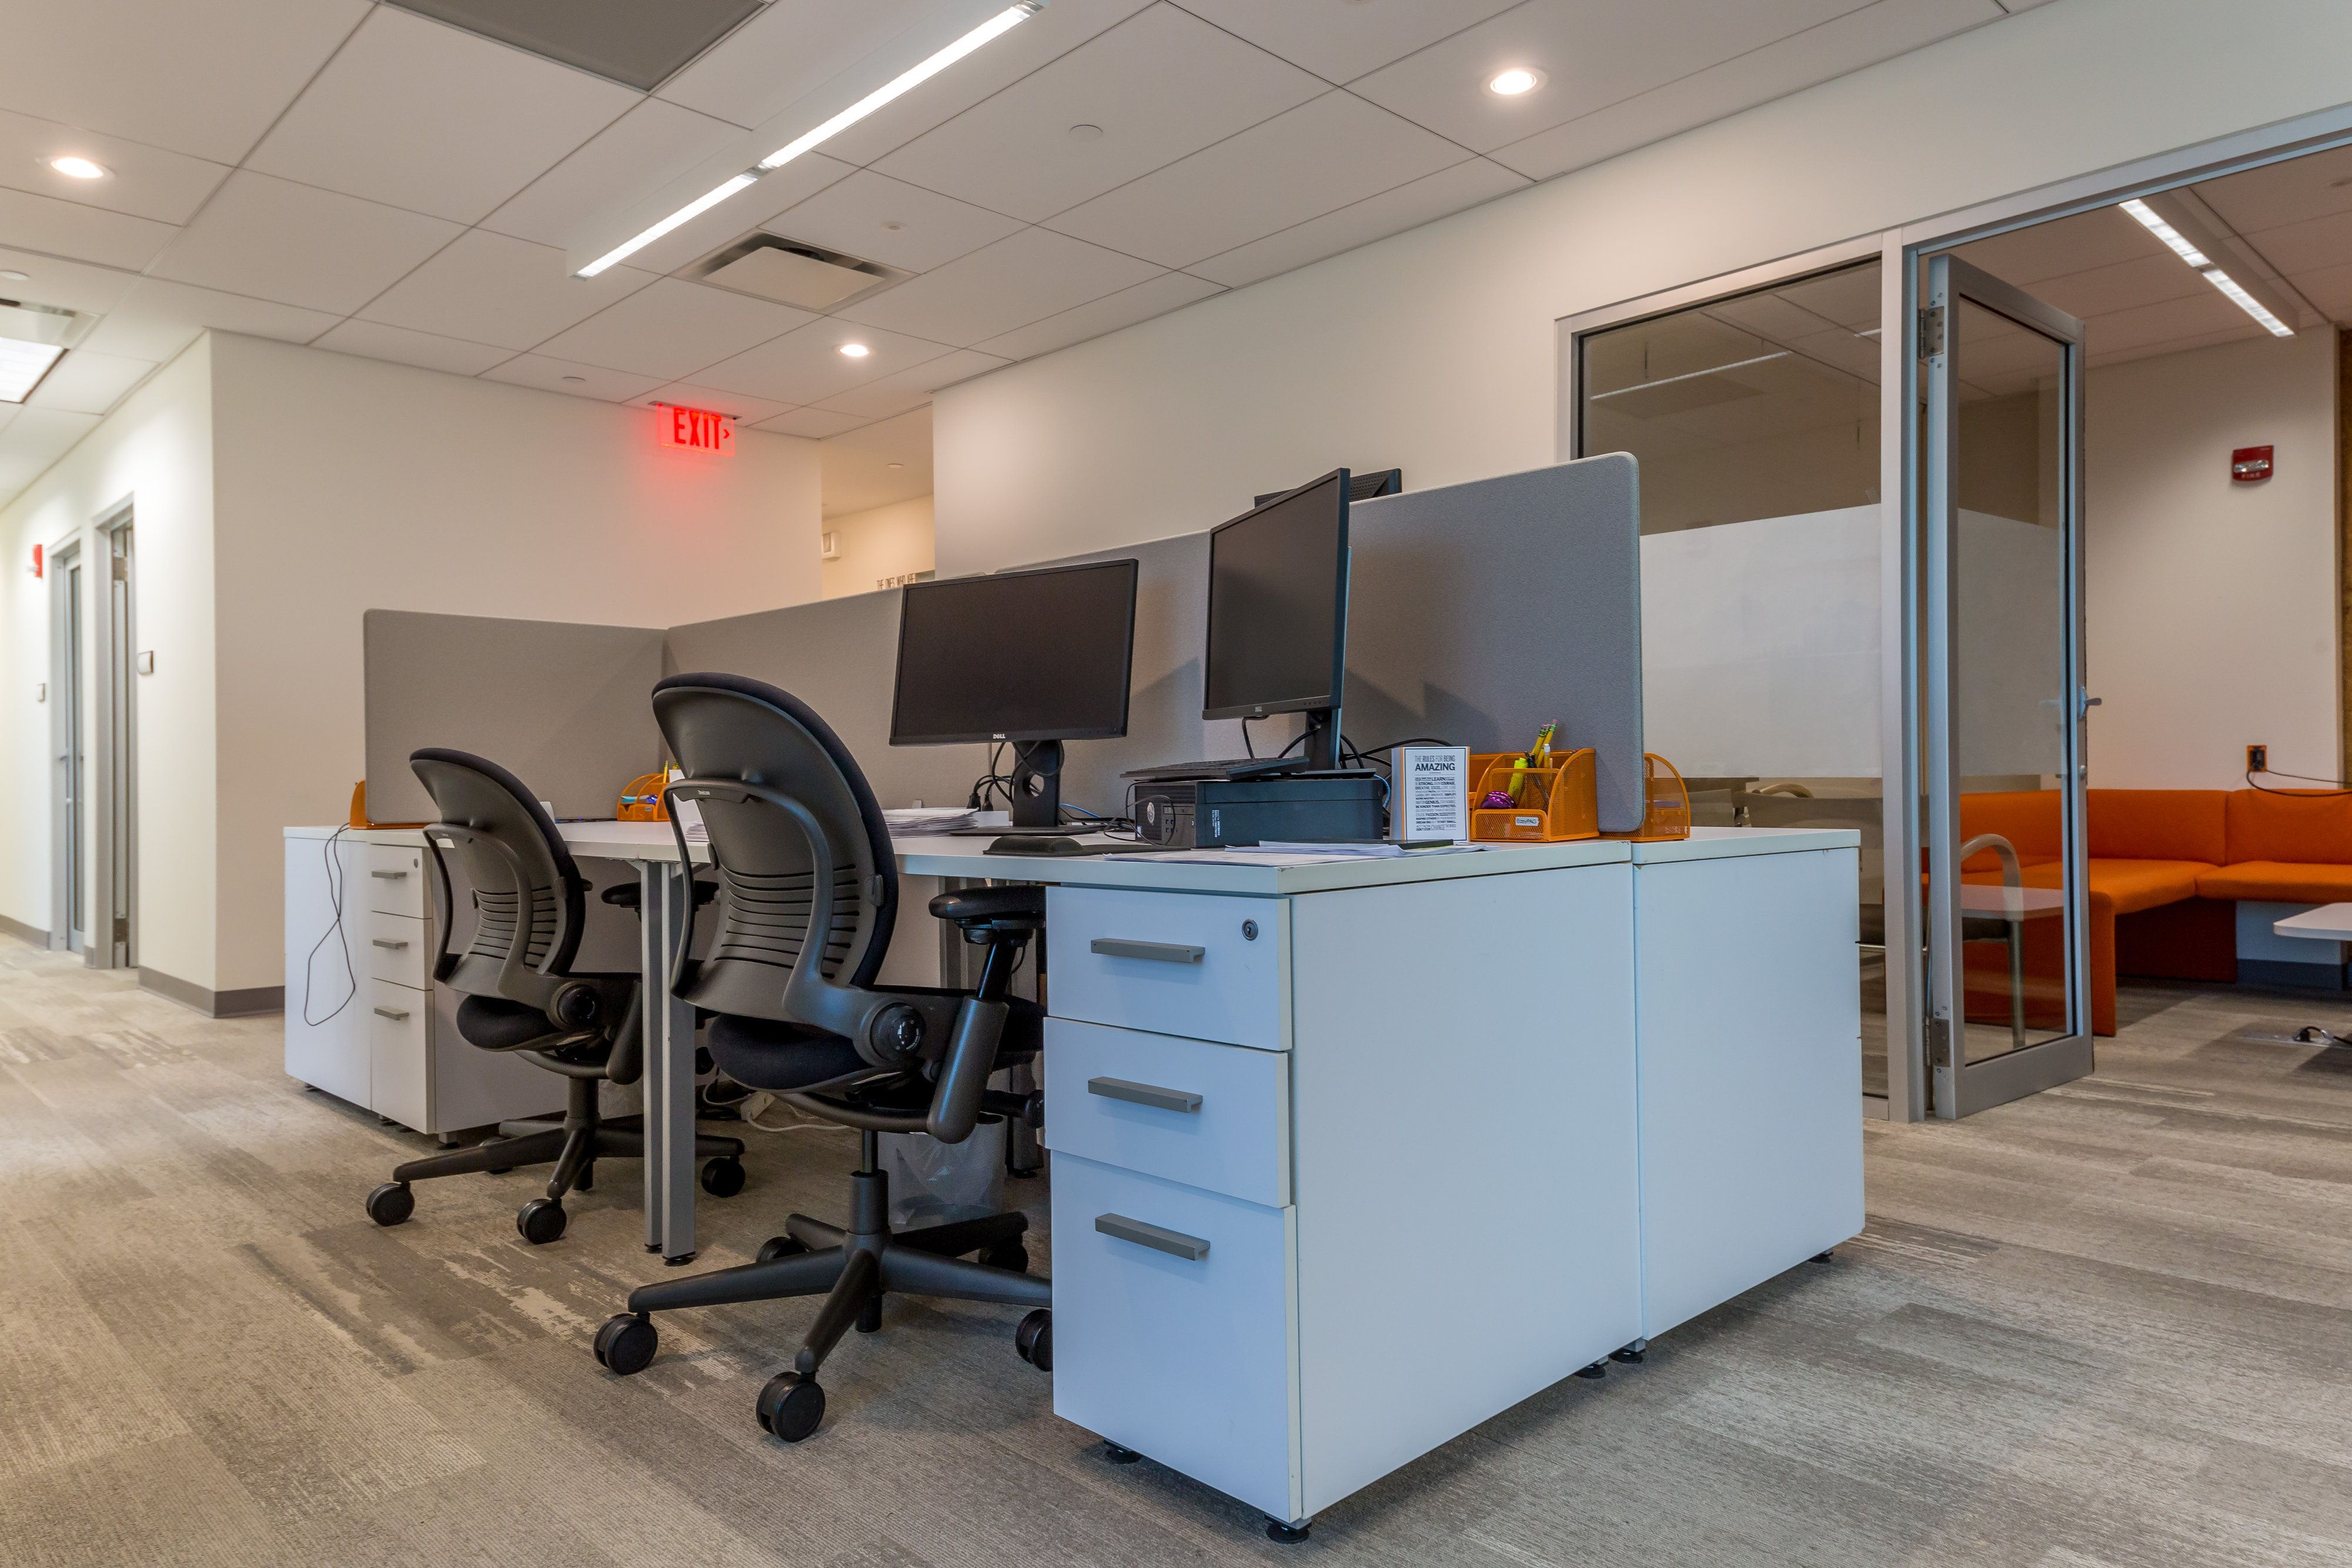 Worksocial Offers Well Designed Shared Office Spaces For Rent In New Jersey With Free Wifi Meeting Rooms Ca Shared Office Space Shared Office Wellness Design